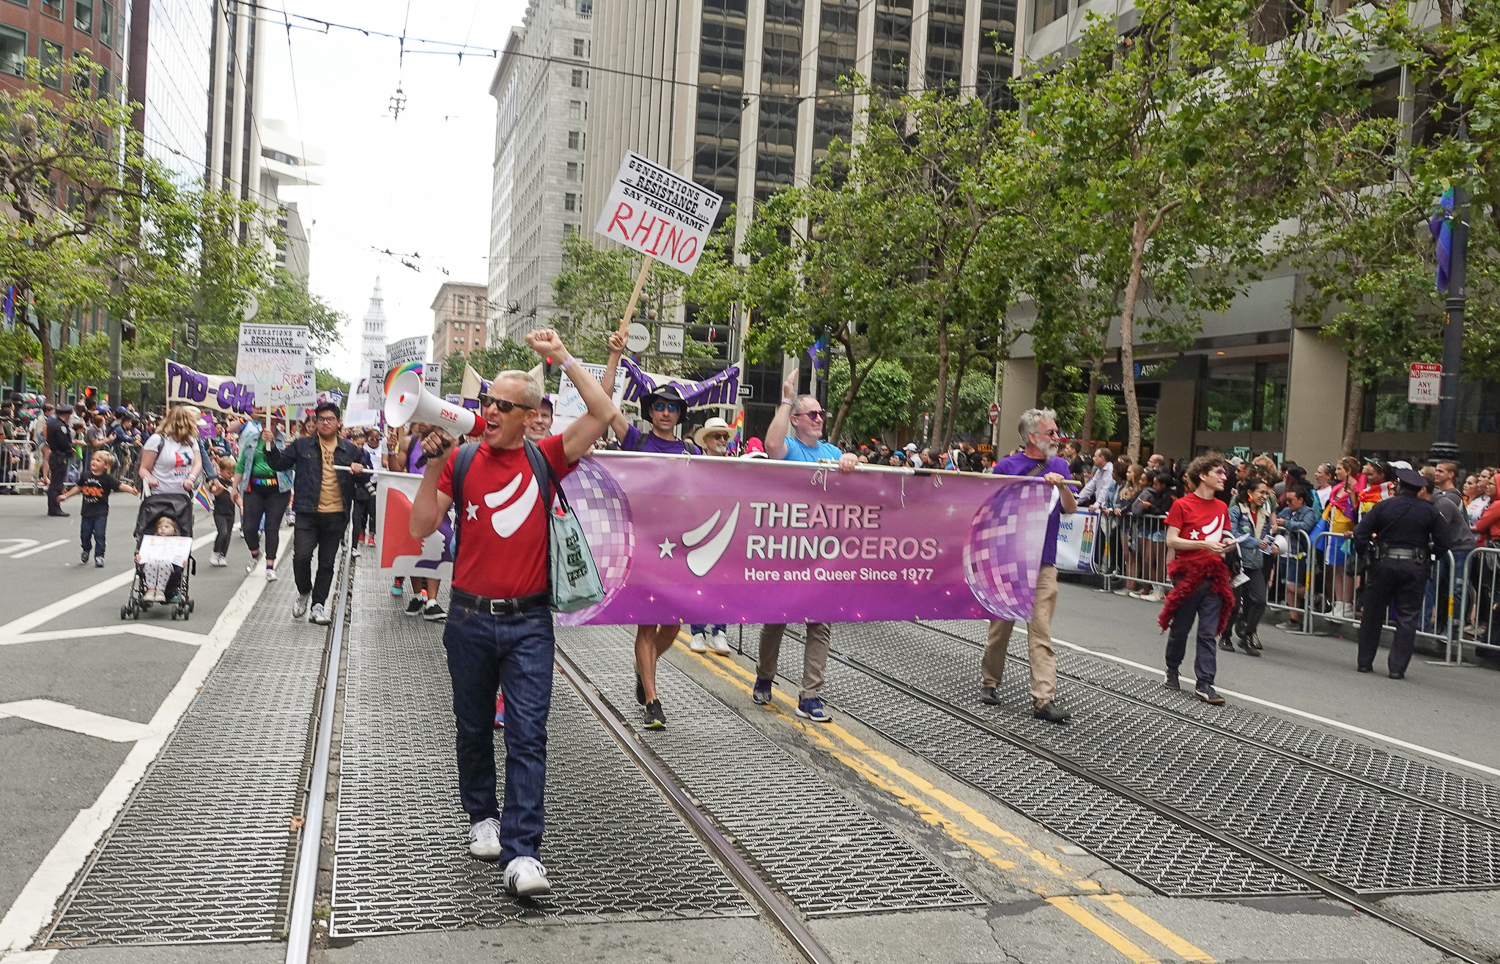 In recognition of our five decades of producing provocative theatre, The Rhino was a part of the Resist Contingent of the 2019 Pride Parade. Photo: Paul Margolis, OurTownSF